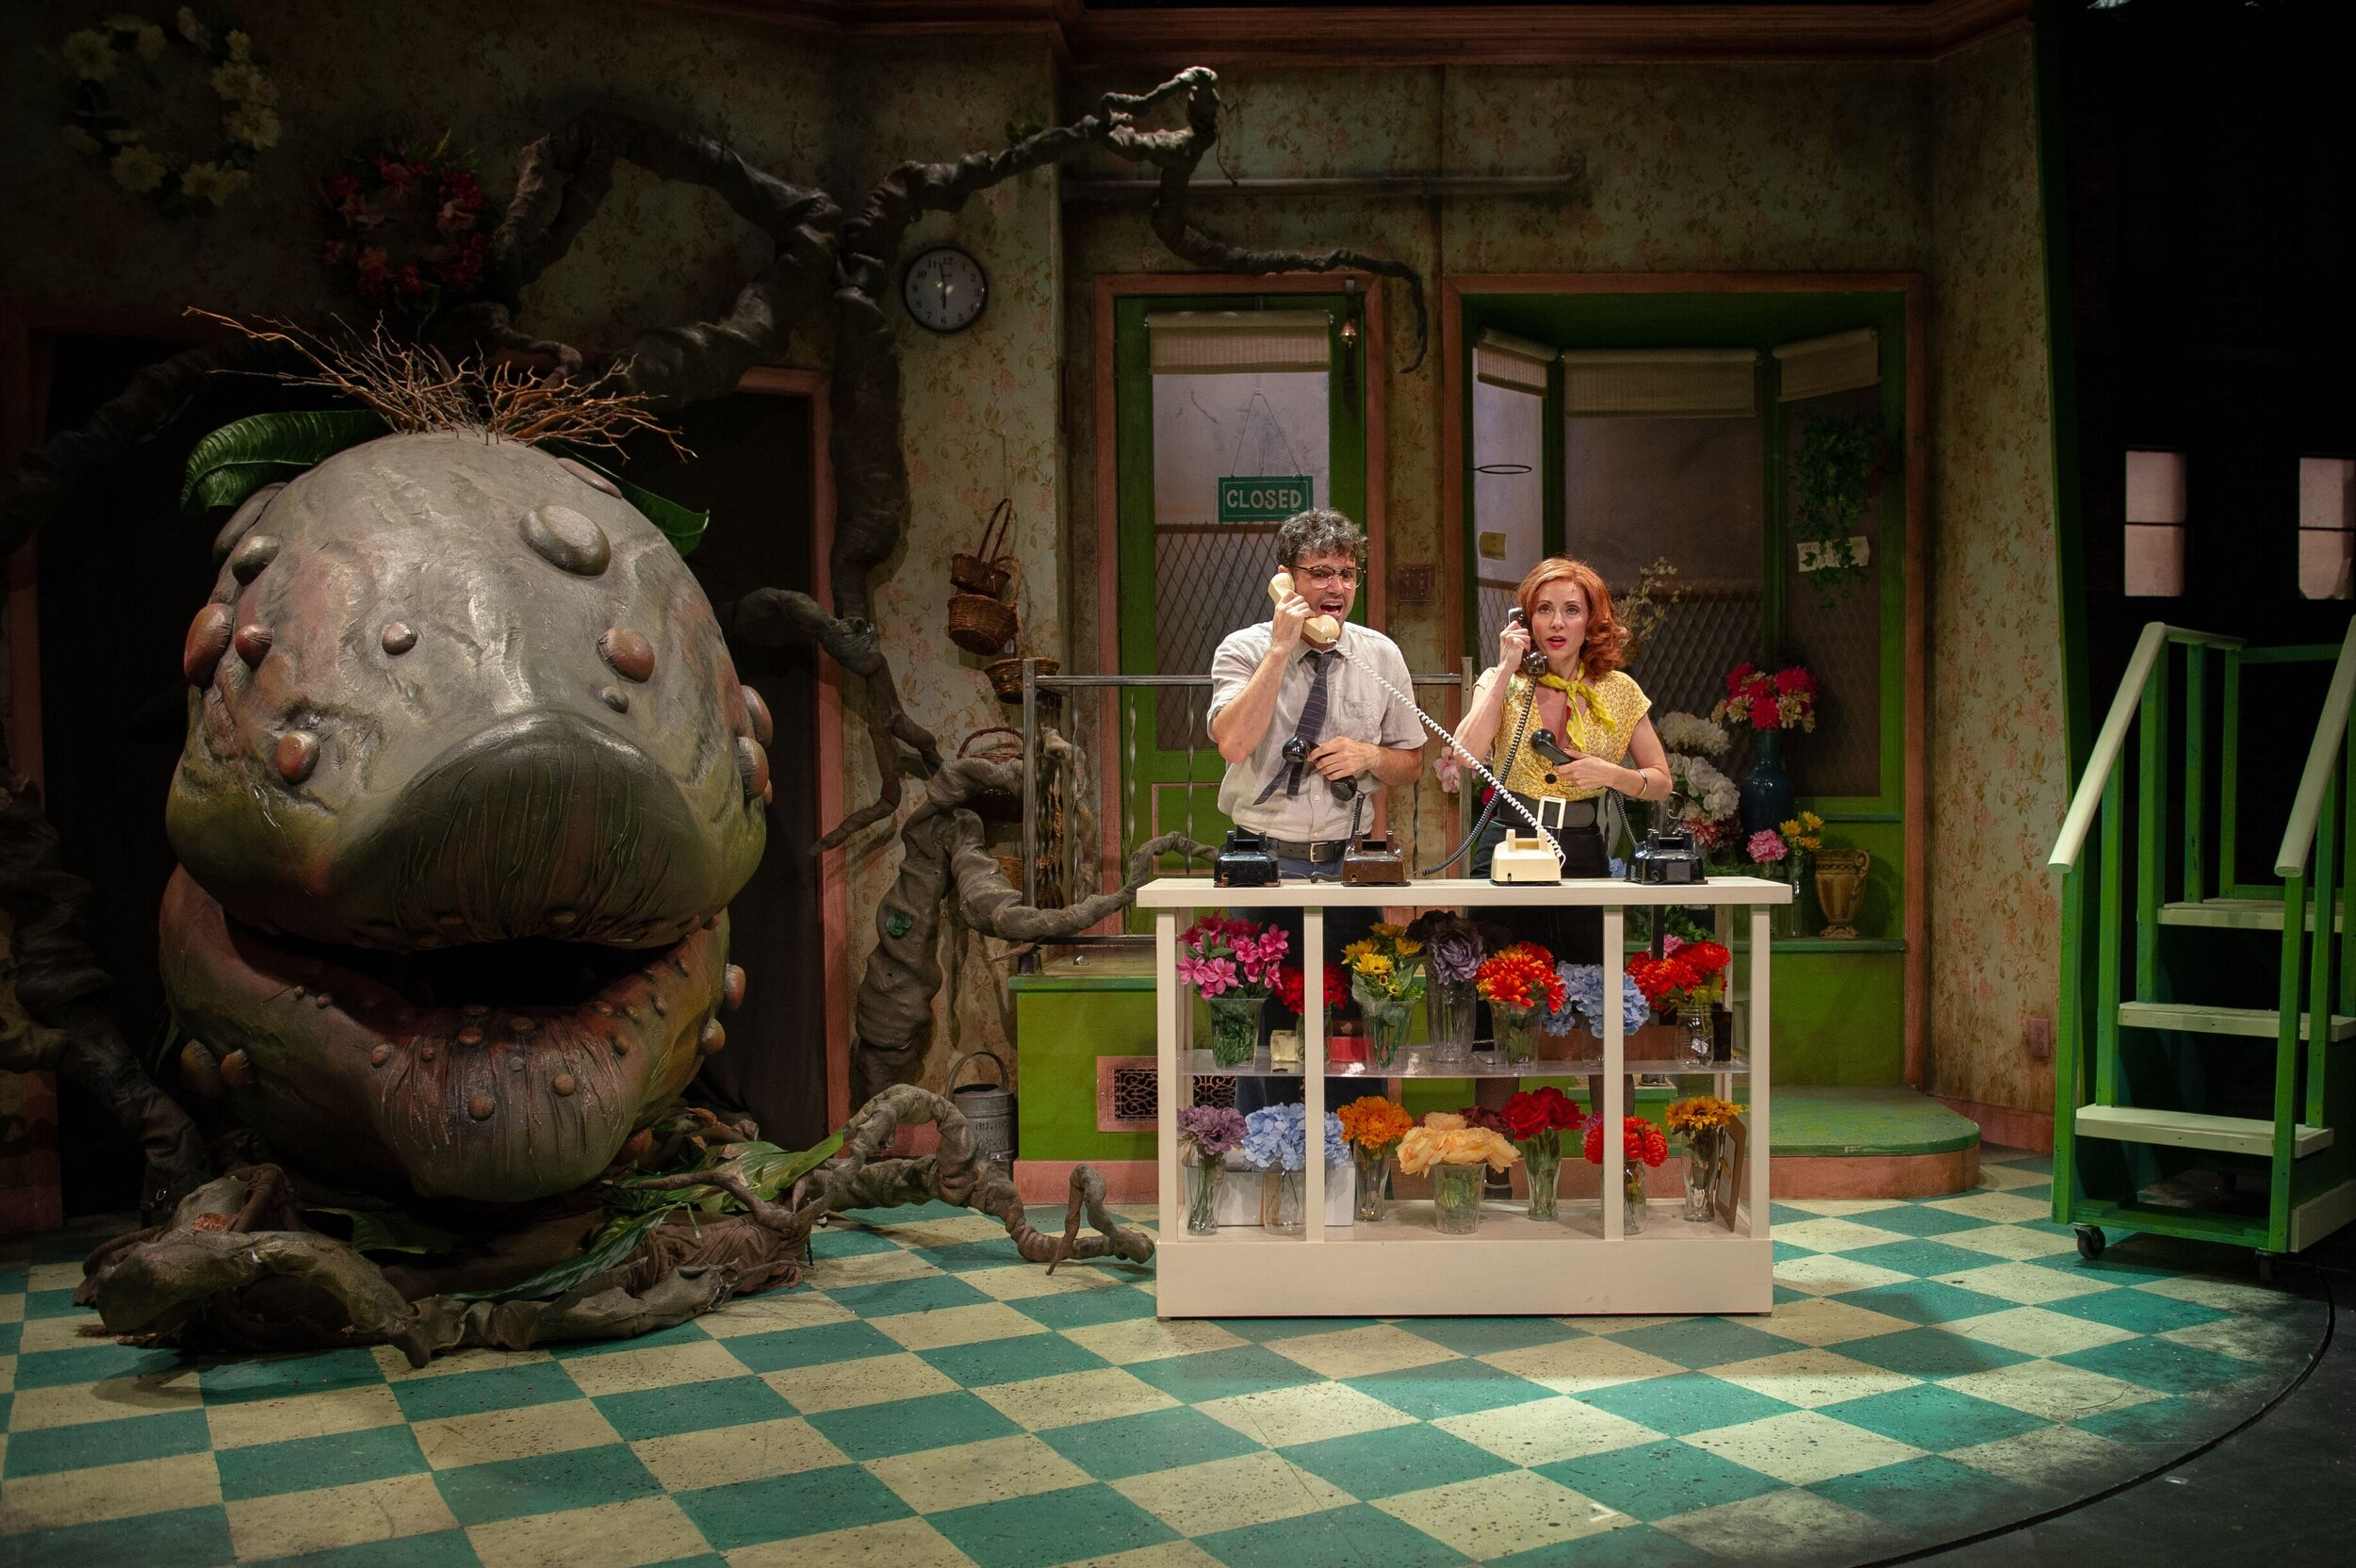 Audrey II, Seymour (Robb Sapp), Audrey (Laura Woyasz) in ACT's production of  Little Shop of Horrors